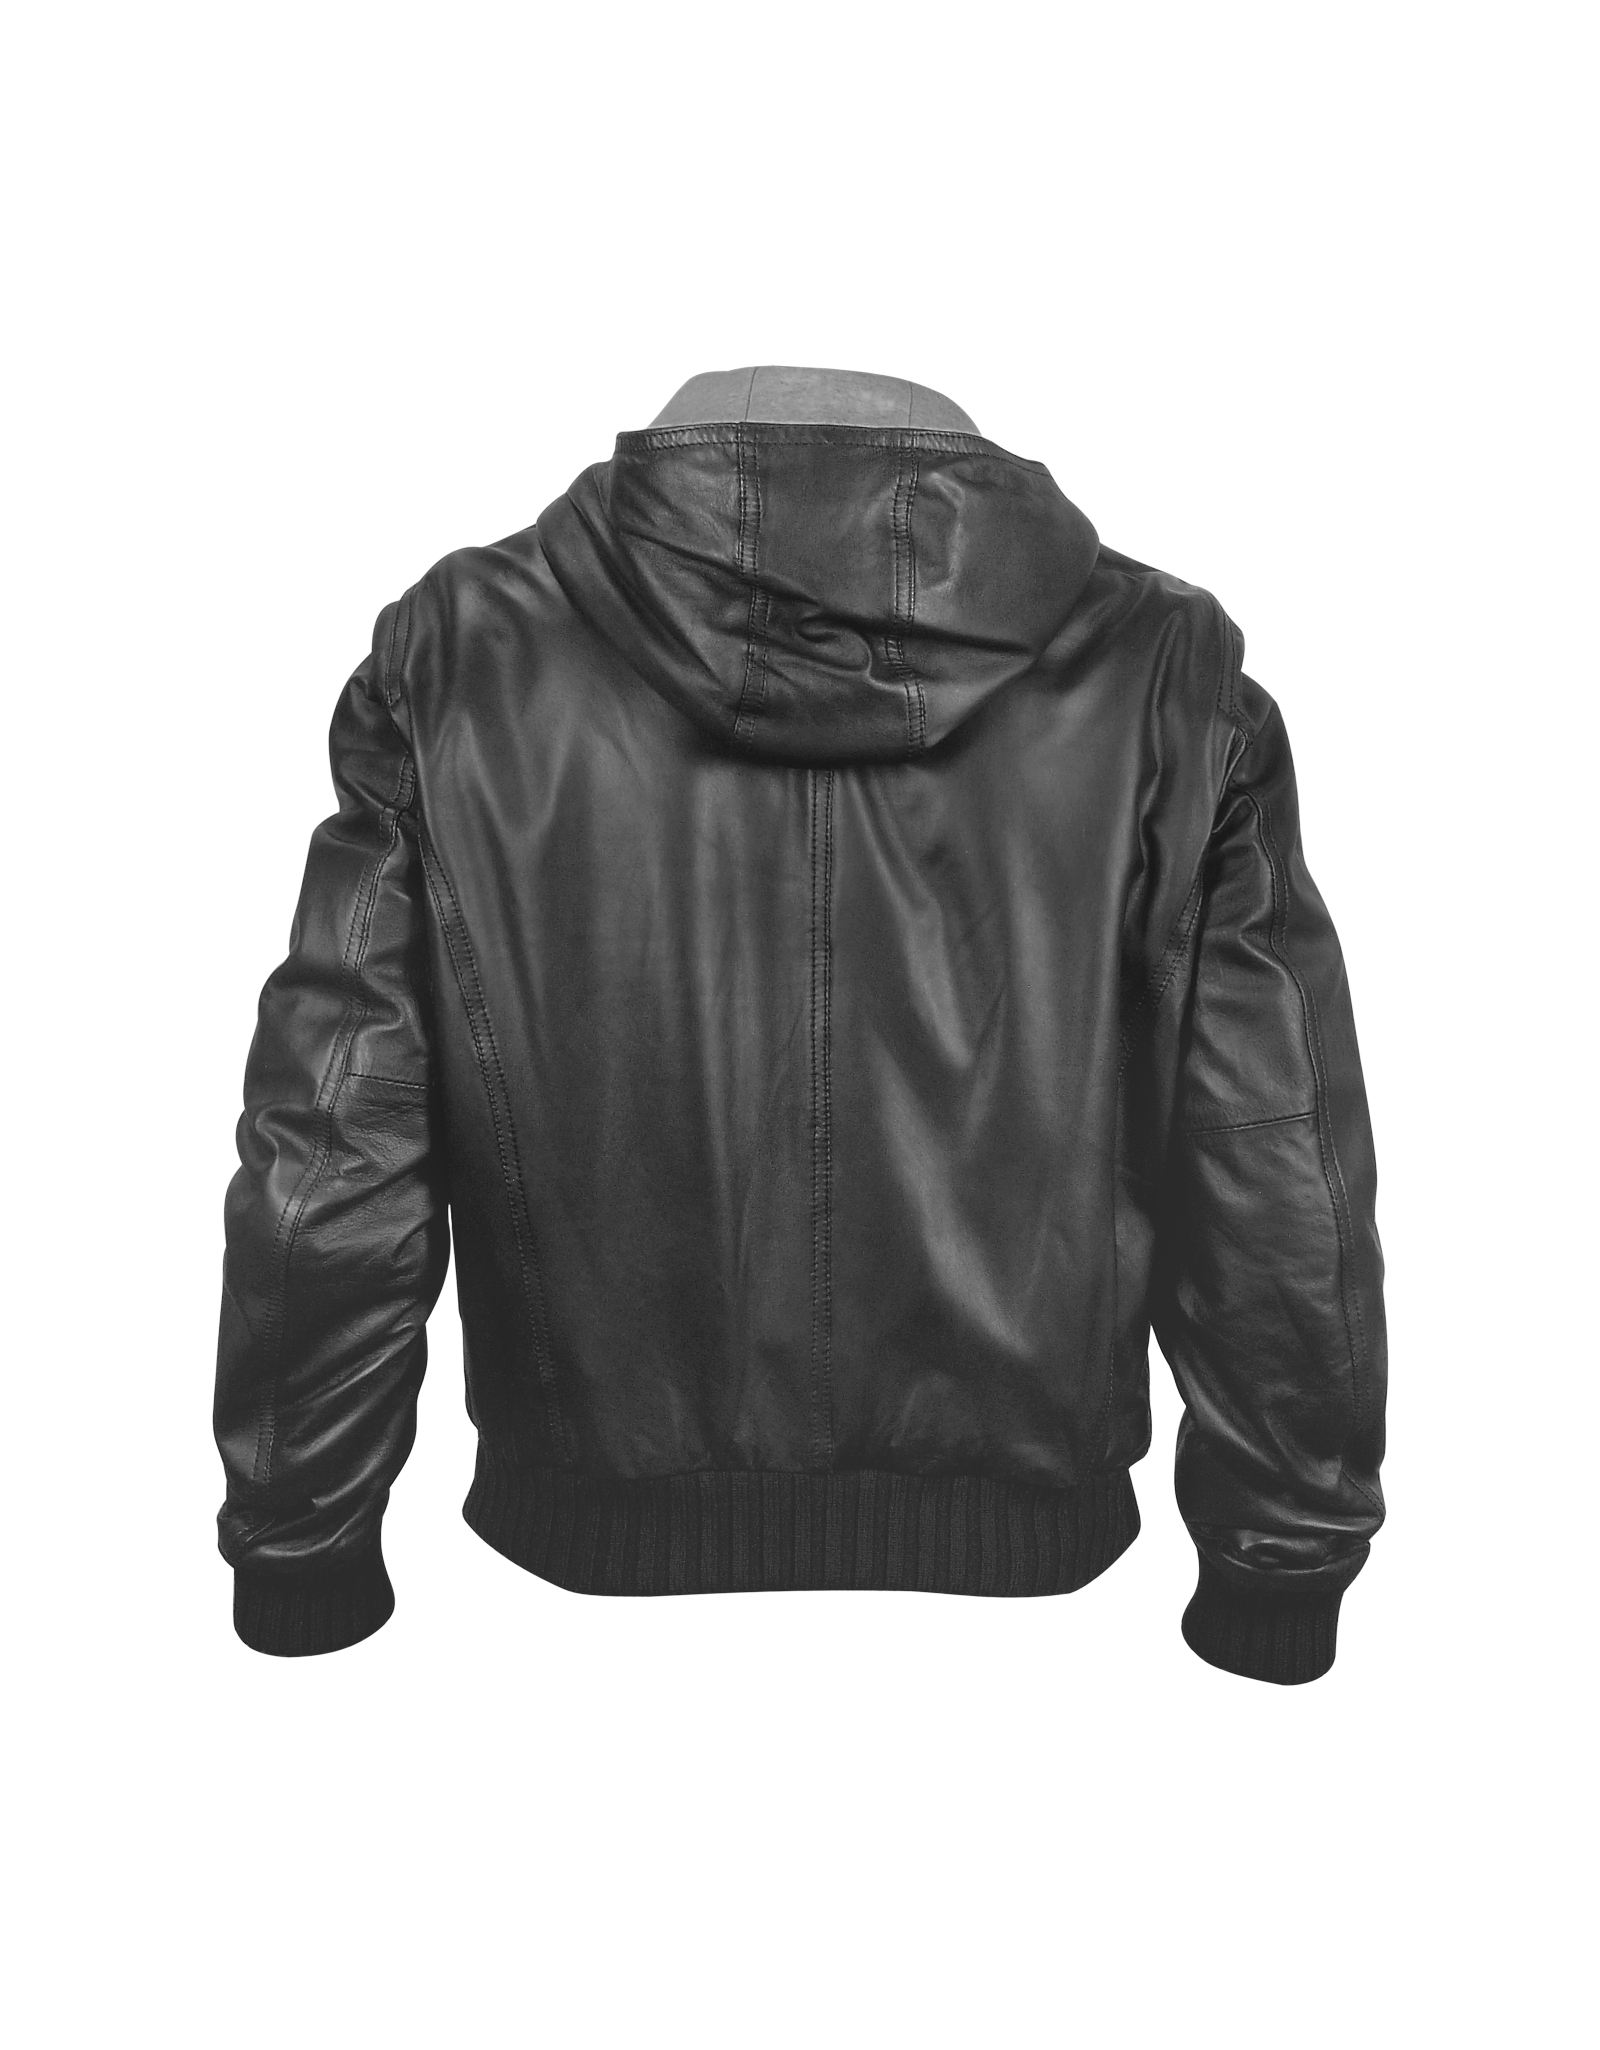 Lyst - Forzieri Men's Black Leather Hooded Jacket in Black for Men